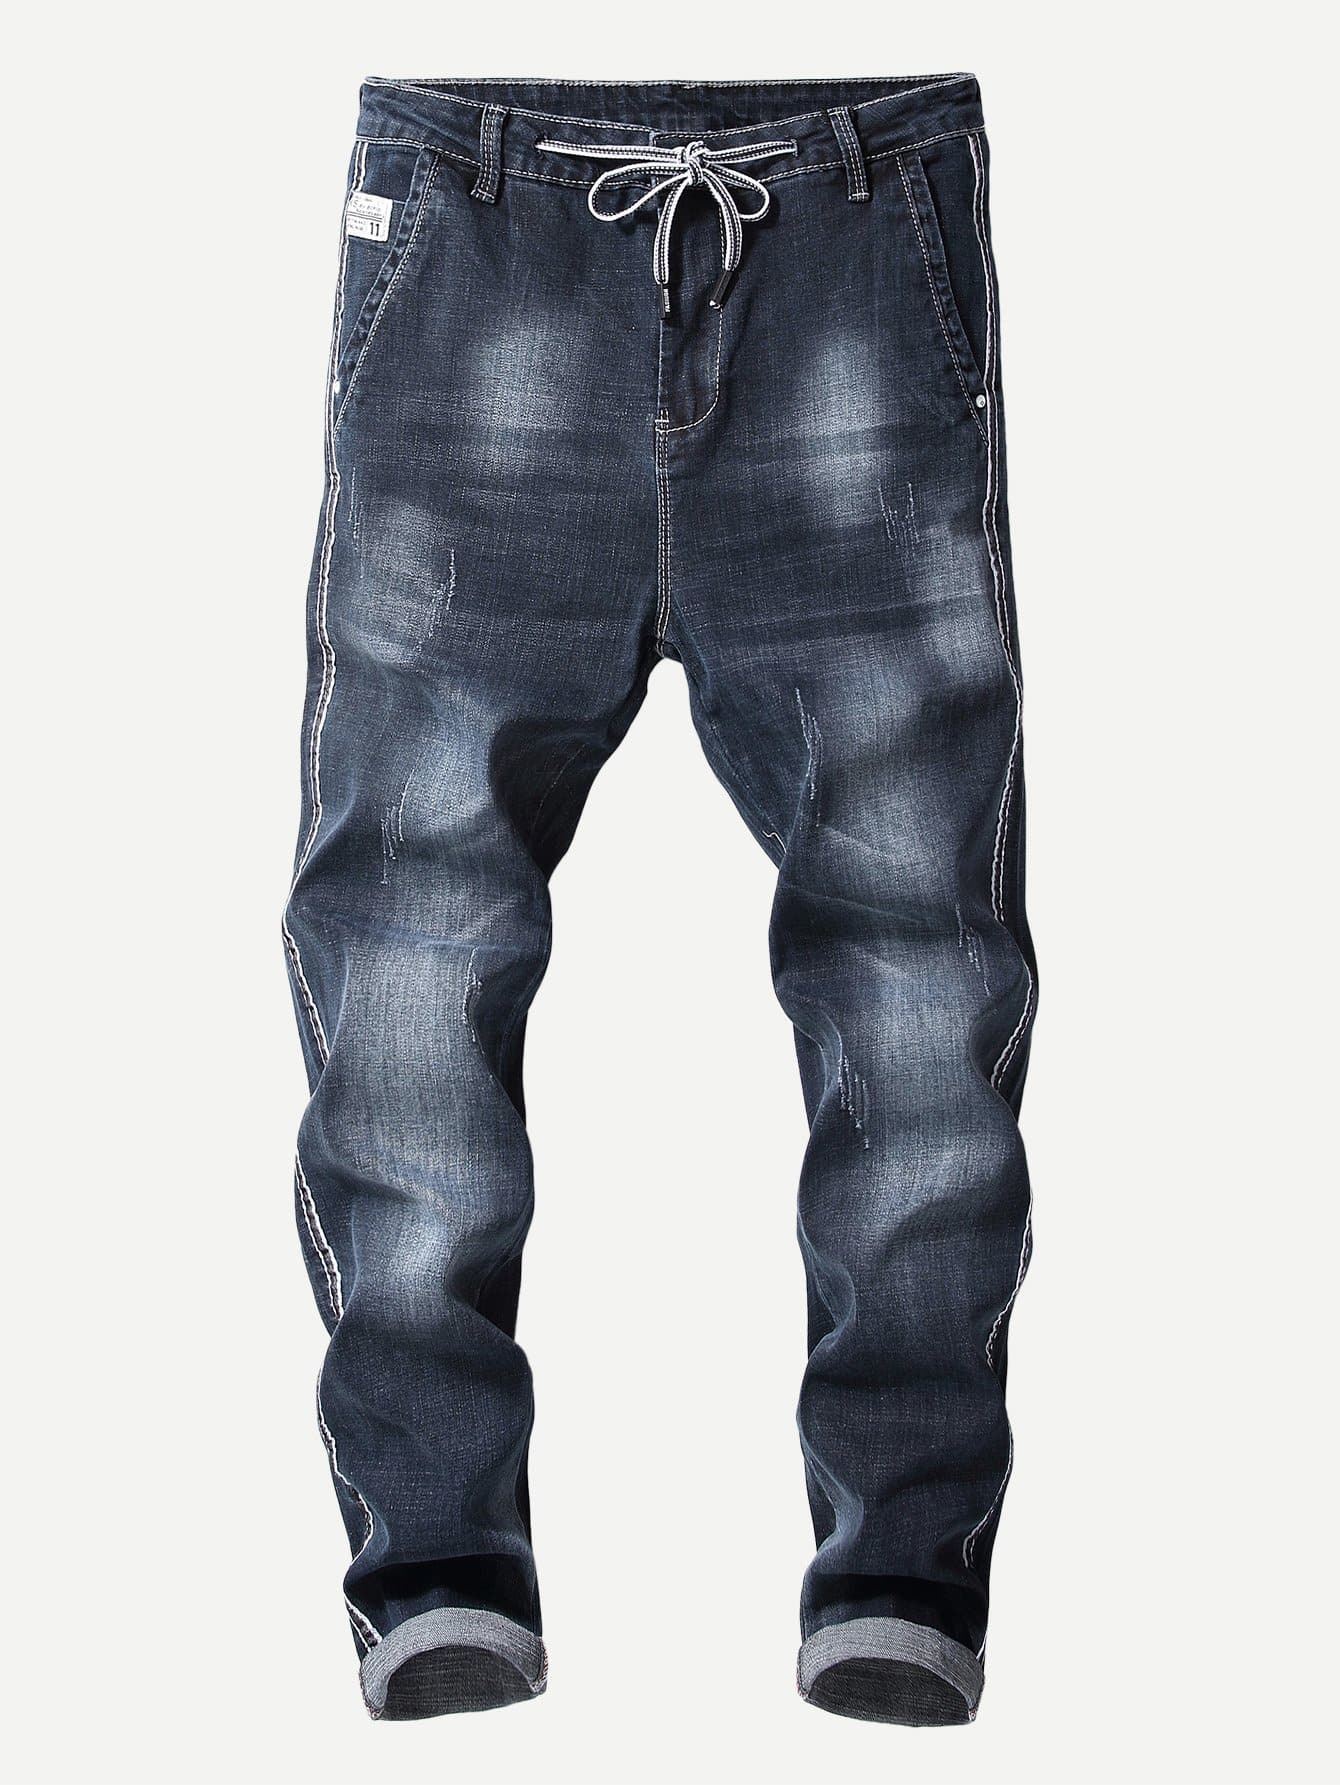 Men Contrast Tape Drawstring Jeans Men Contrast Tape Drawstring Jeans